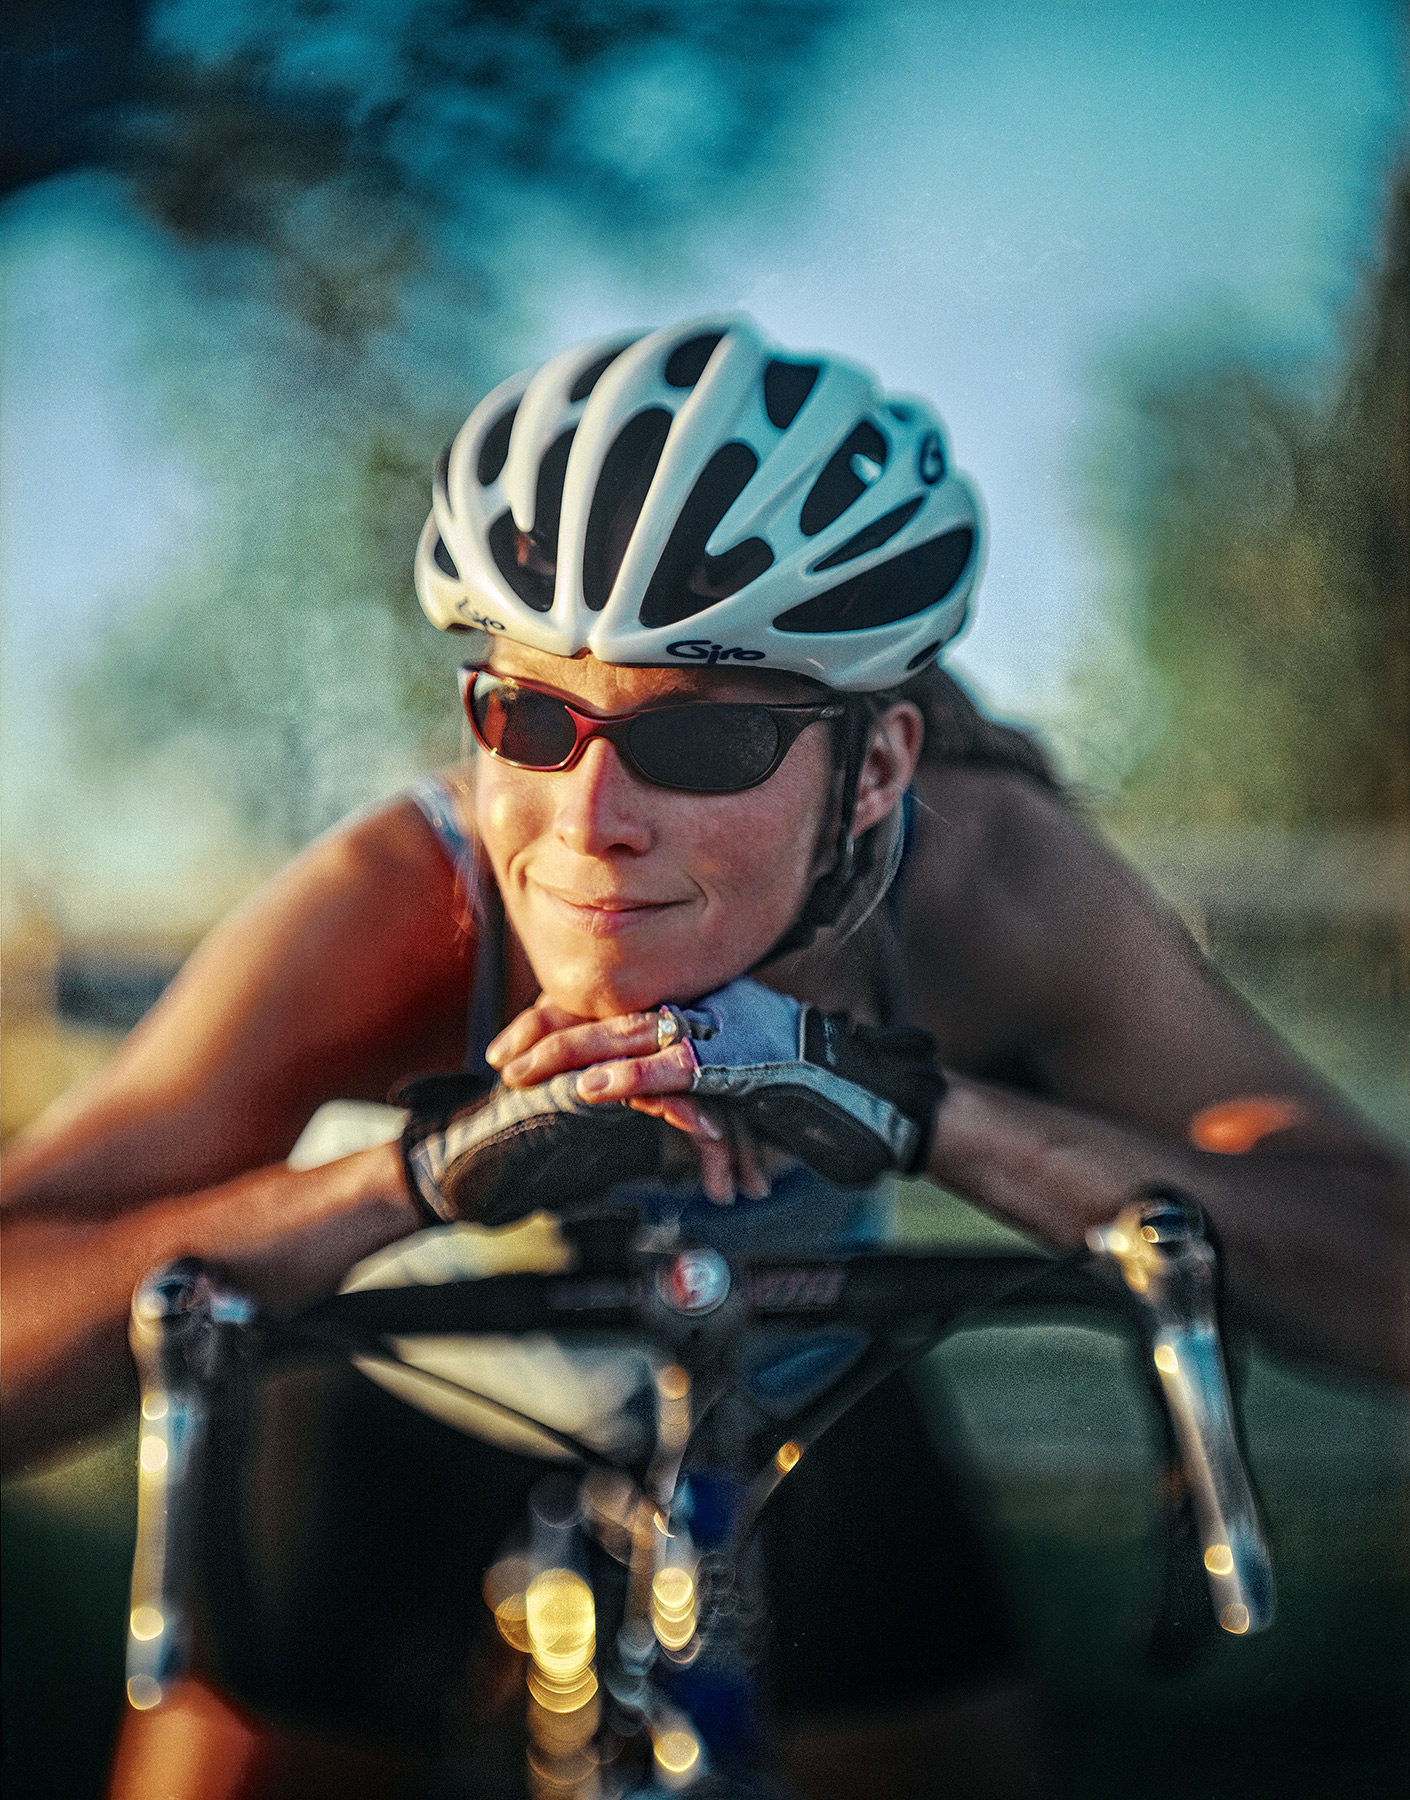 Female-Cyclist.1